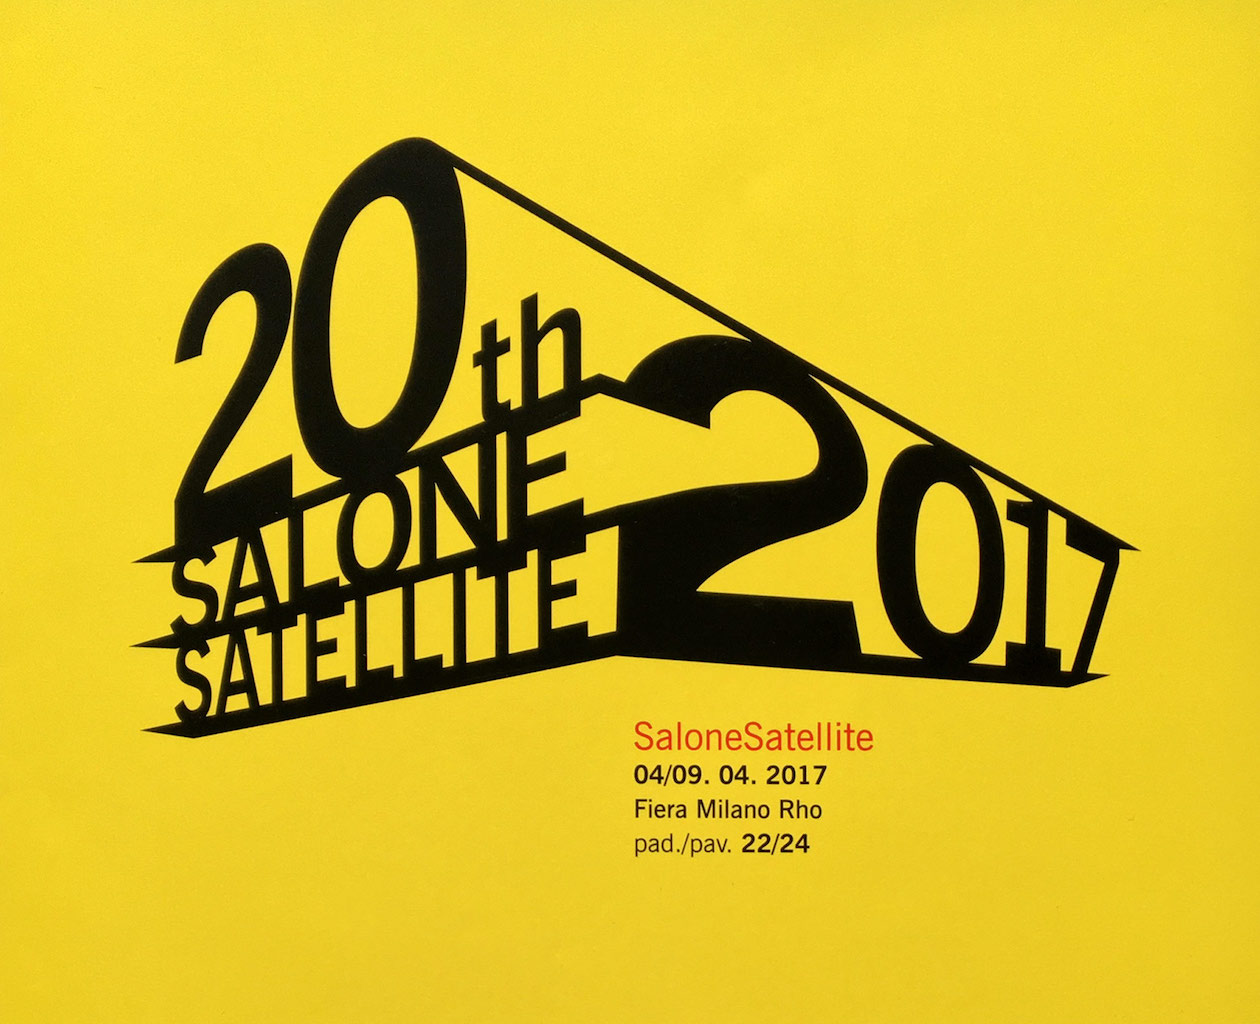 Milano - Salone Satellite 2017